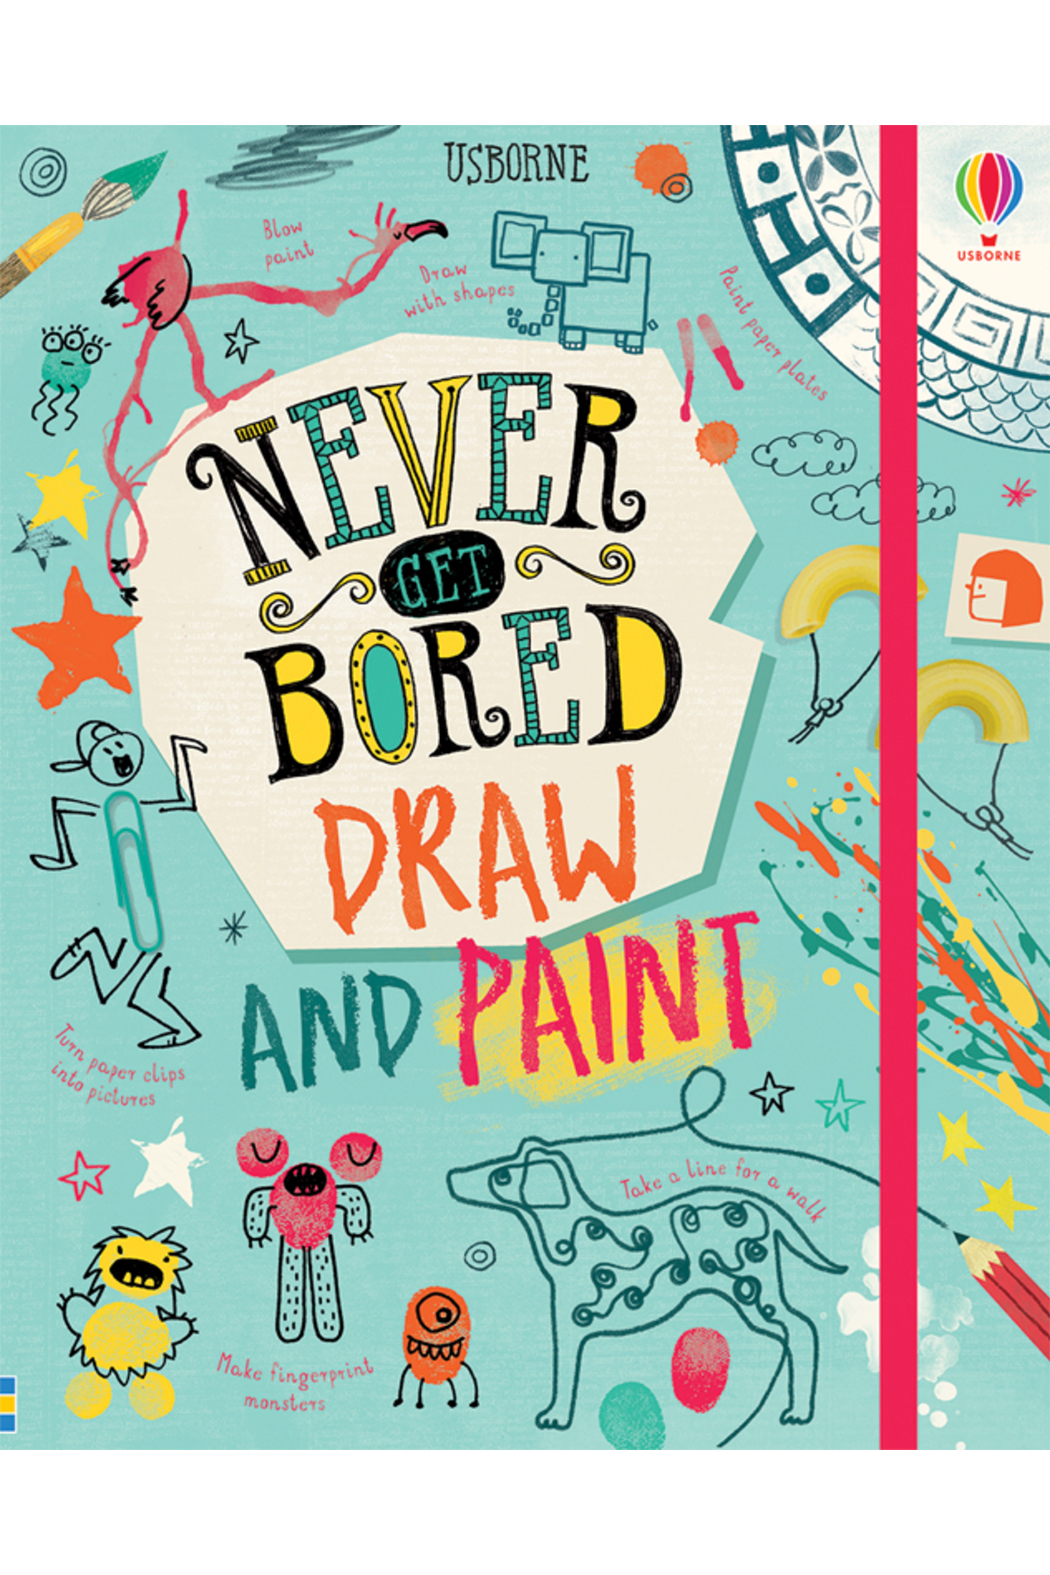 Usborne Never Get Bored Draw And Paint - Main Image